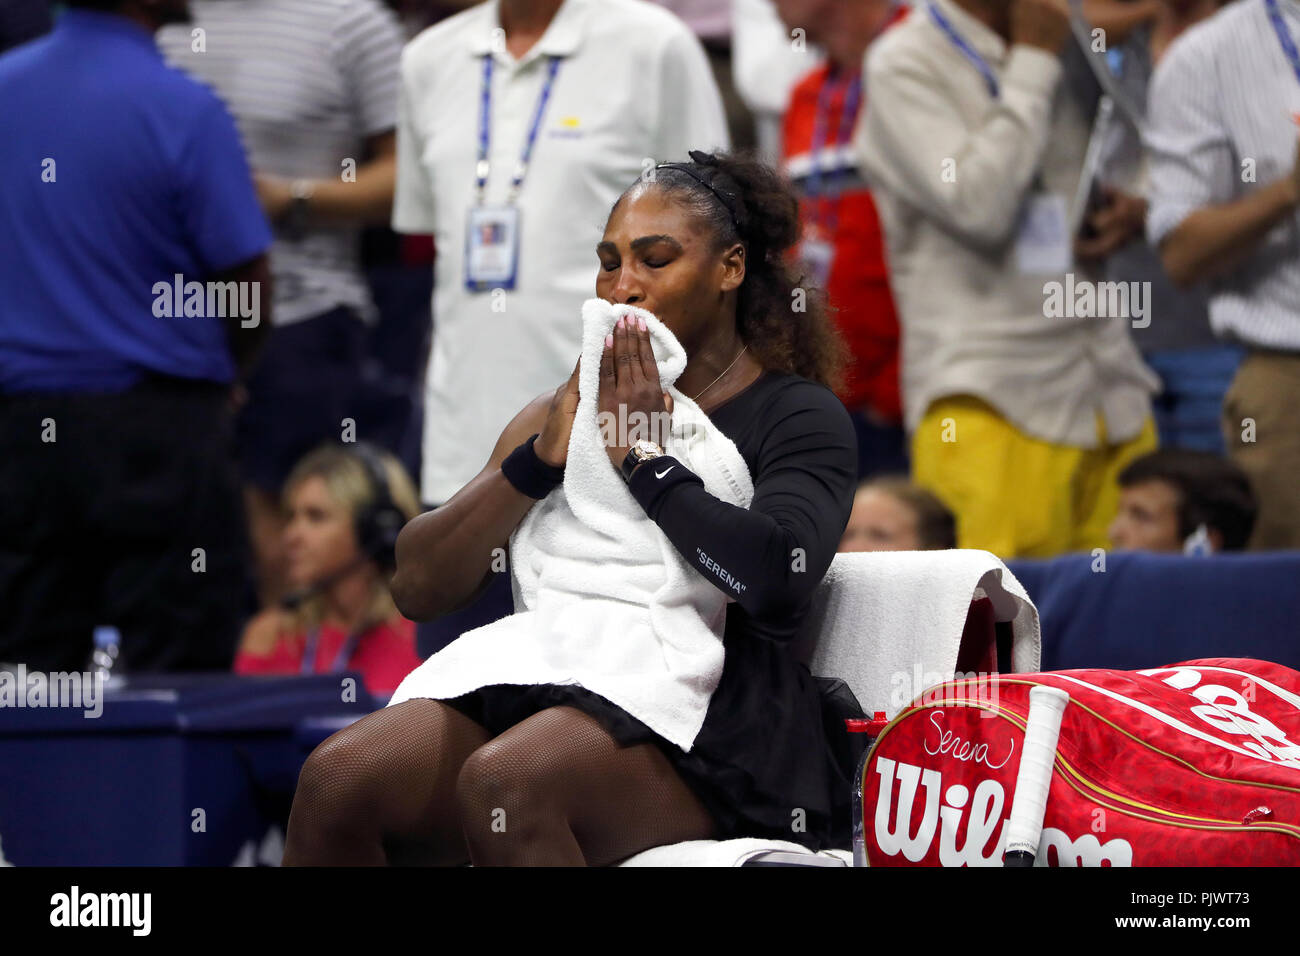 New York, USA. 8th September 2018.  US Open Tennis:   Serena Williams tries to compose herself moments after her loss to Naomi Osaka of Japan in the US Open women's final.   Williams was penalized a game at 4-3 in the final set, which added controversy to the match. Credit: Adam Stoltman/Alamy Live News - Stock Image